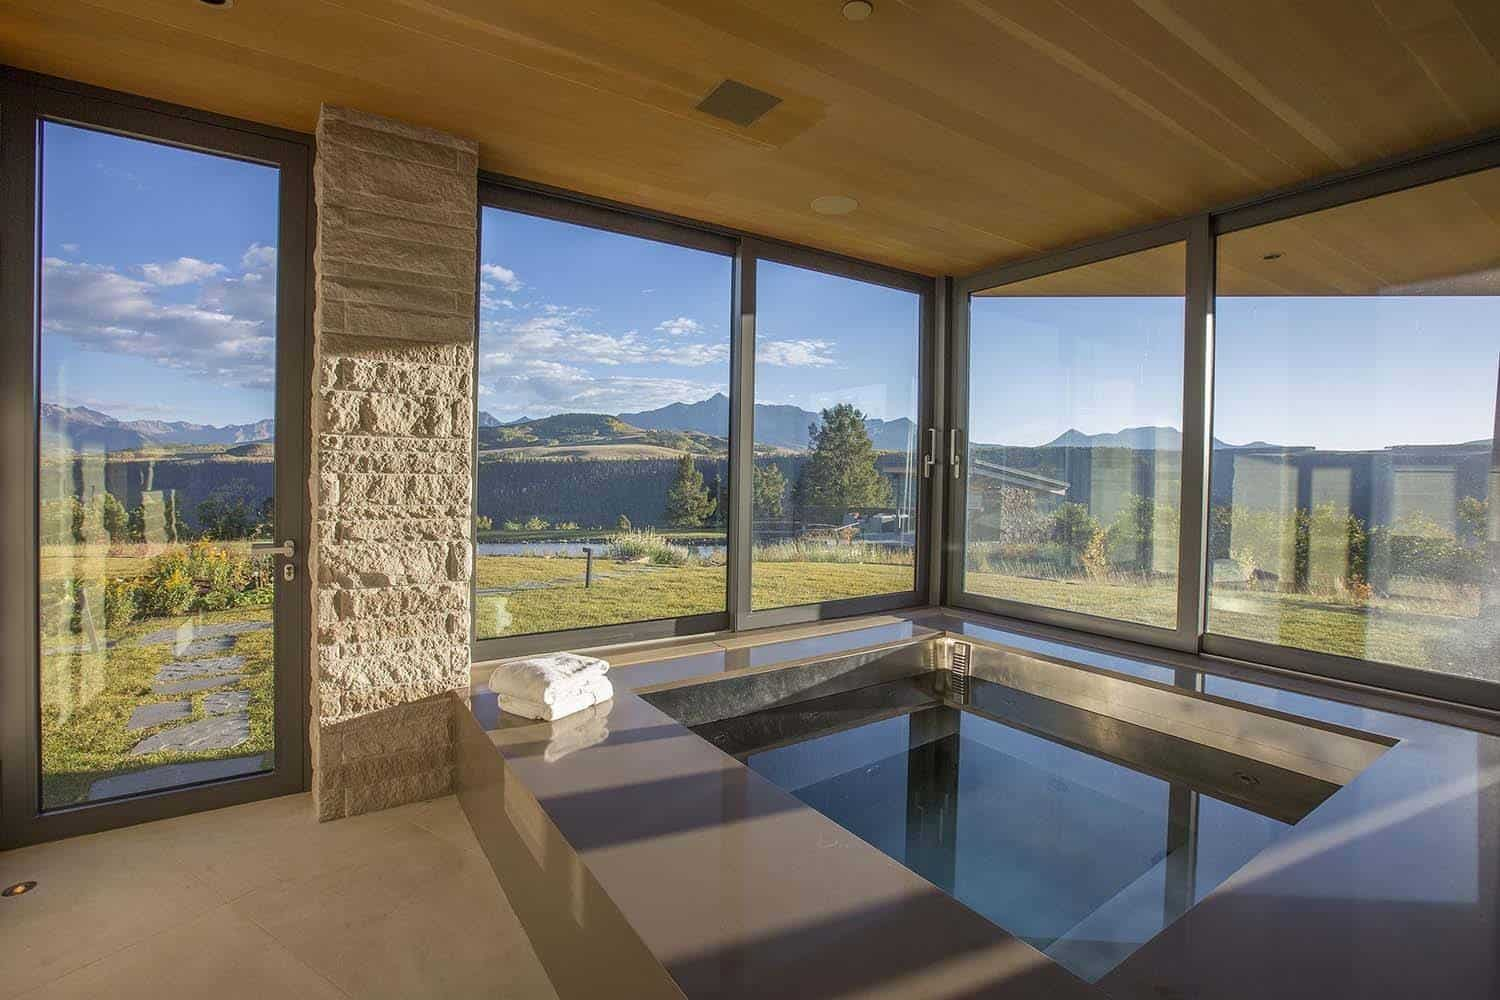 Modern-Residence-Colorado-Poss Architecture-48-1 Kindesign